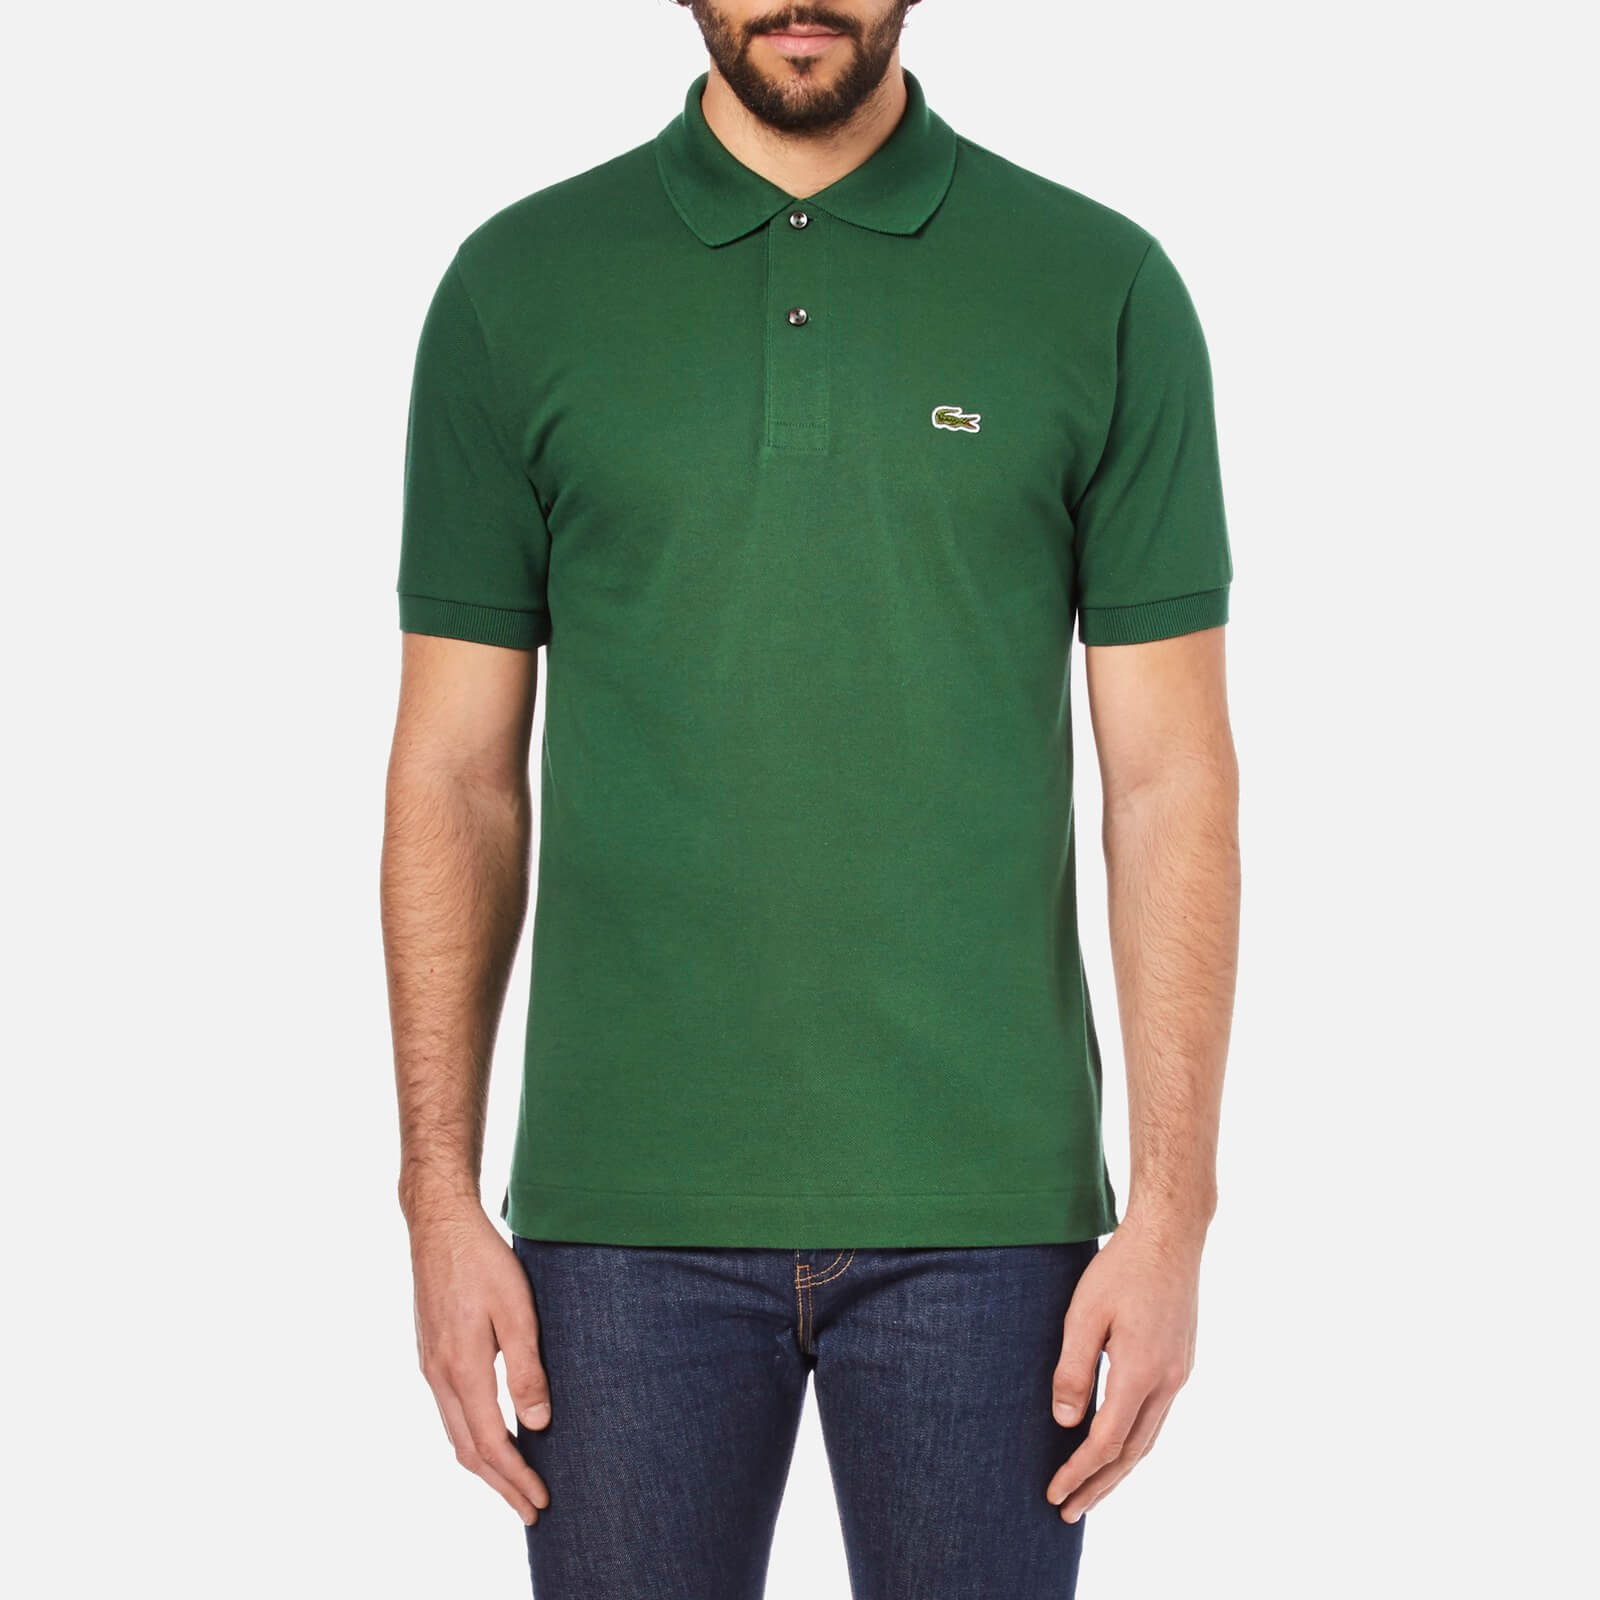 d5797fe48828 Lacoste Men s Short Sleeve Pique Polo Shirt - Chlorophyll